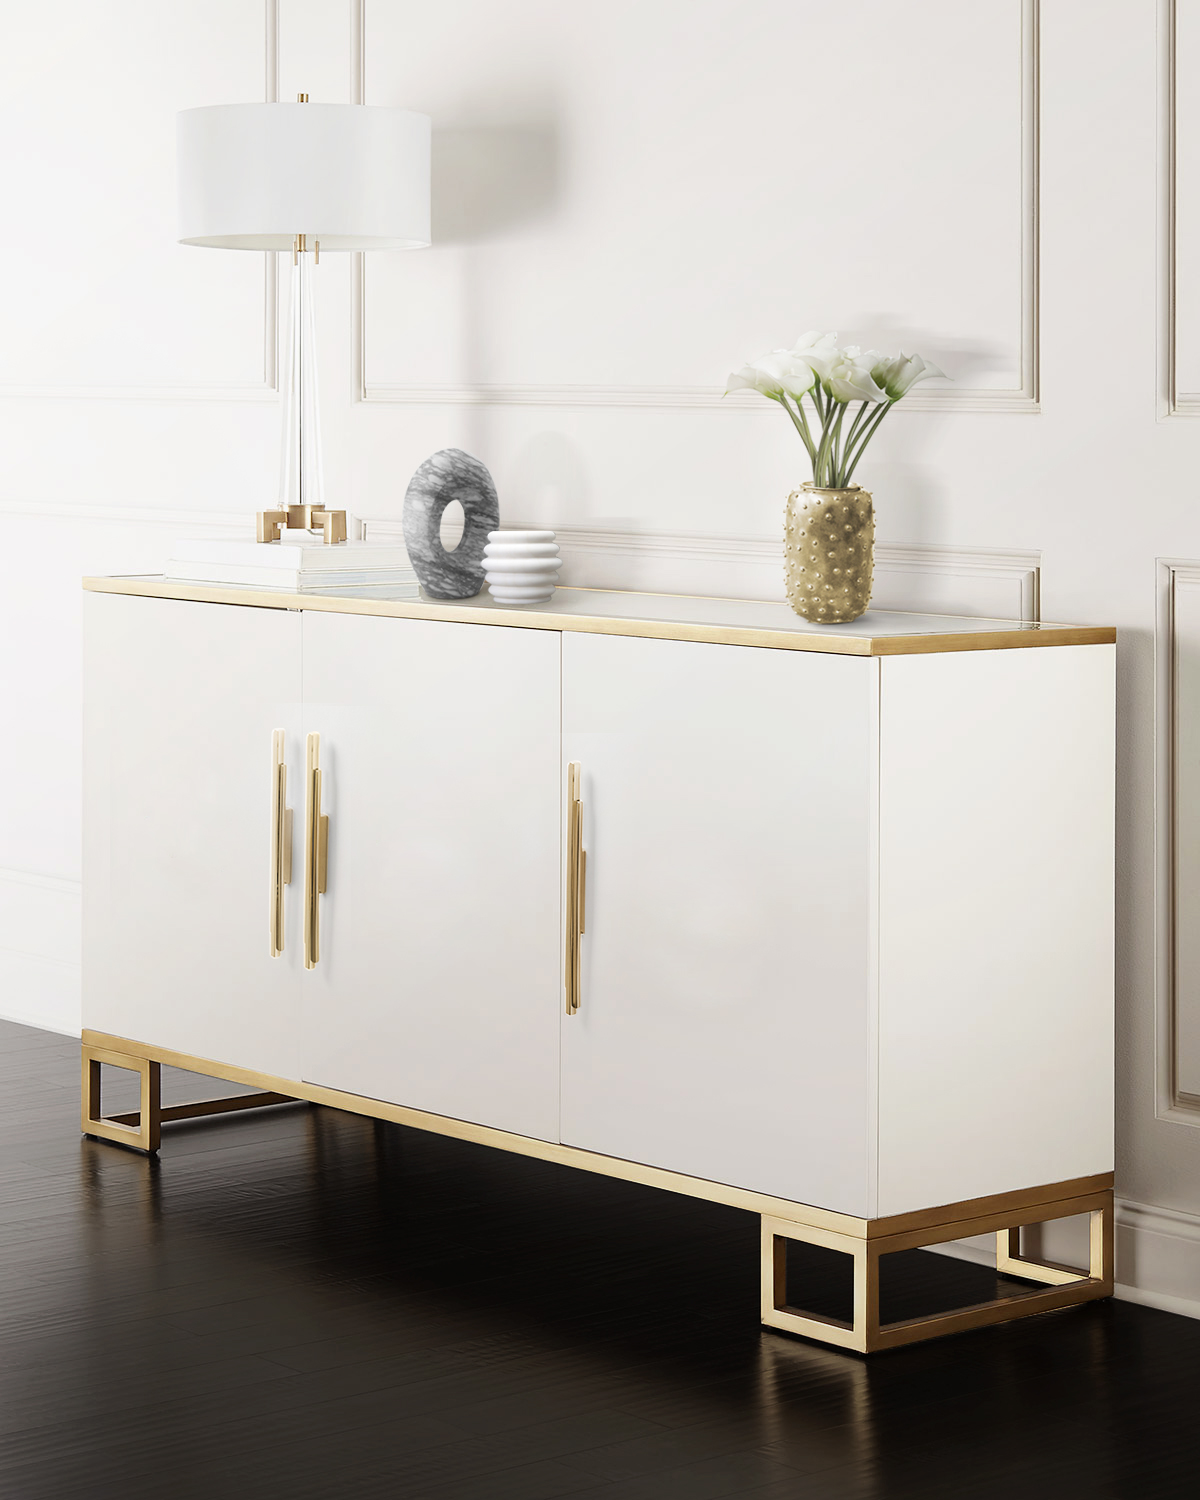 Hallway Decor for a Stunning Memorable Foyer hallway decorating Hallway decorating-fill the space with personality Skylinecm3001 sideboard